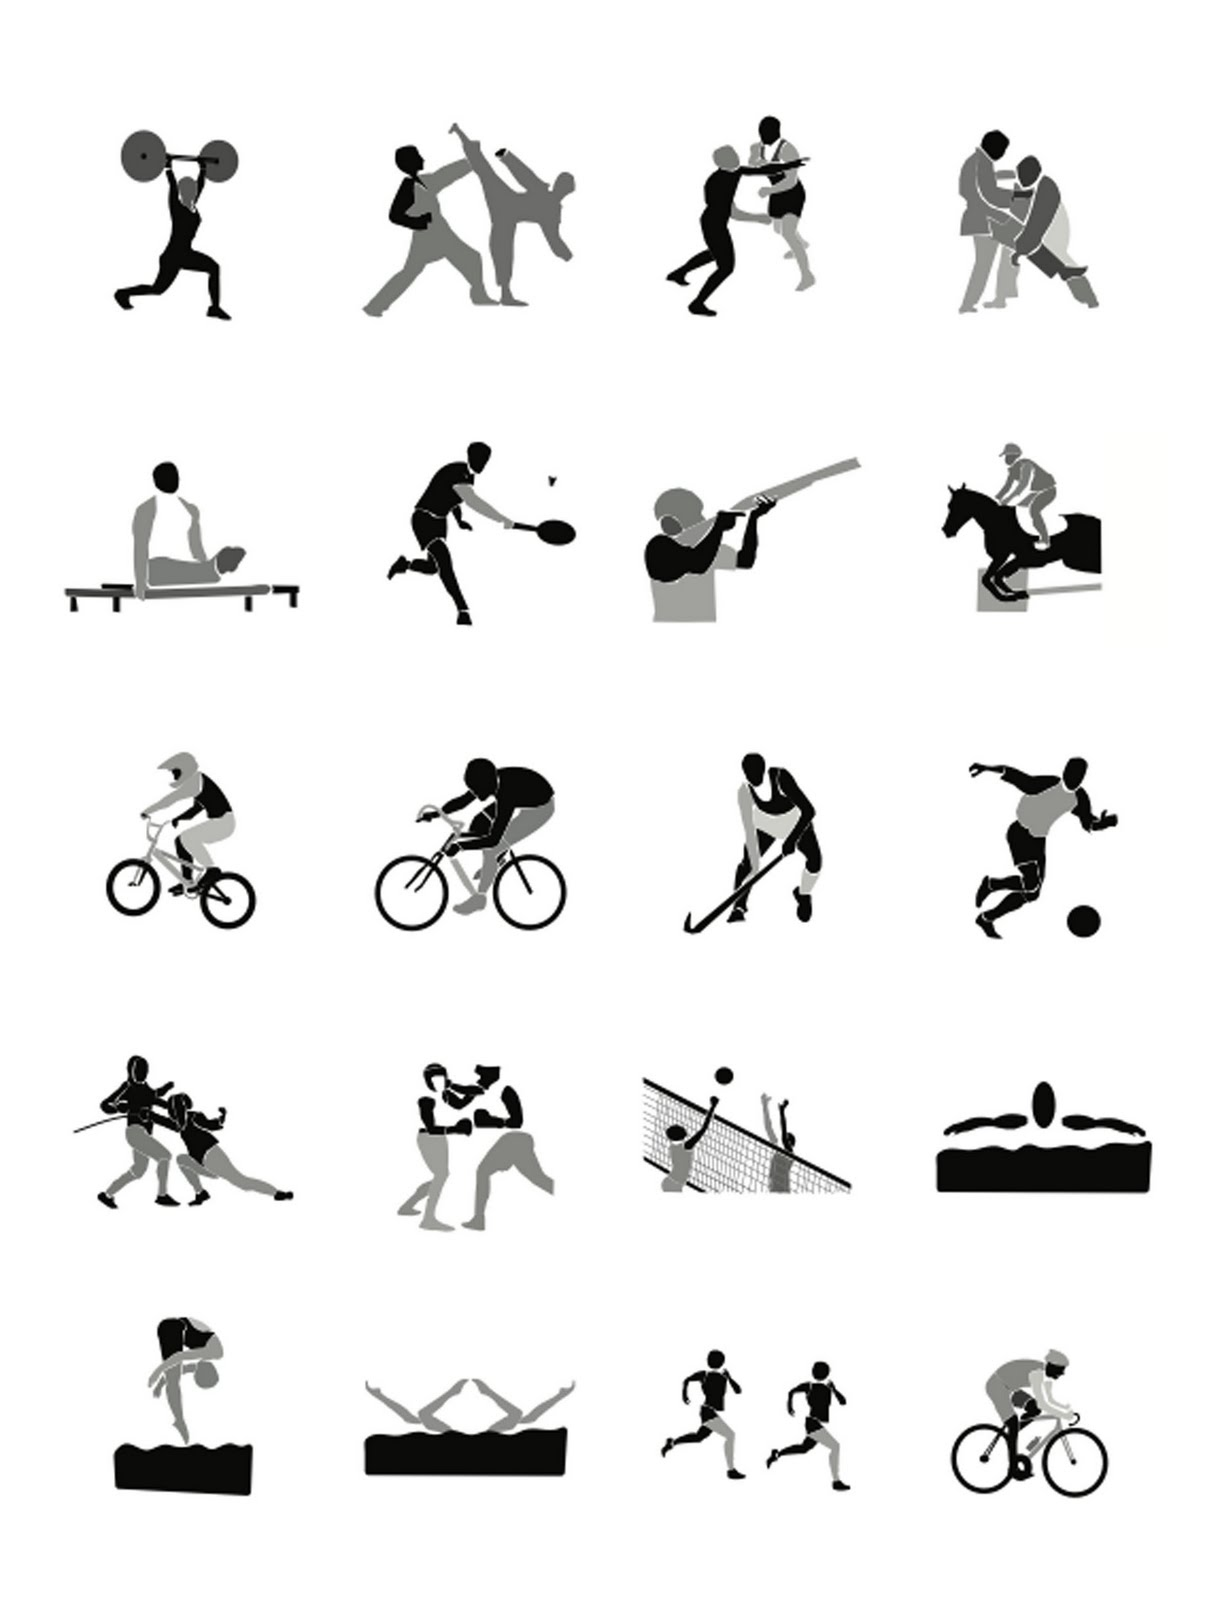 14 Olympic Event Icons Images